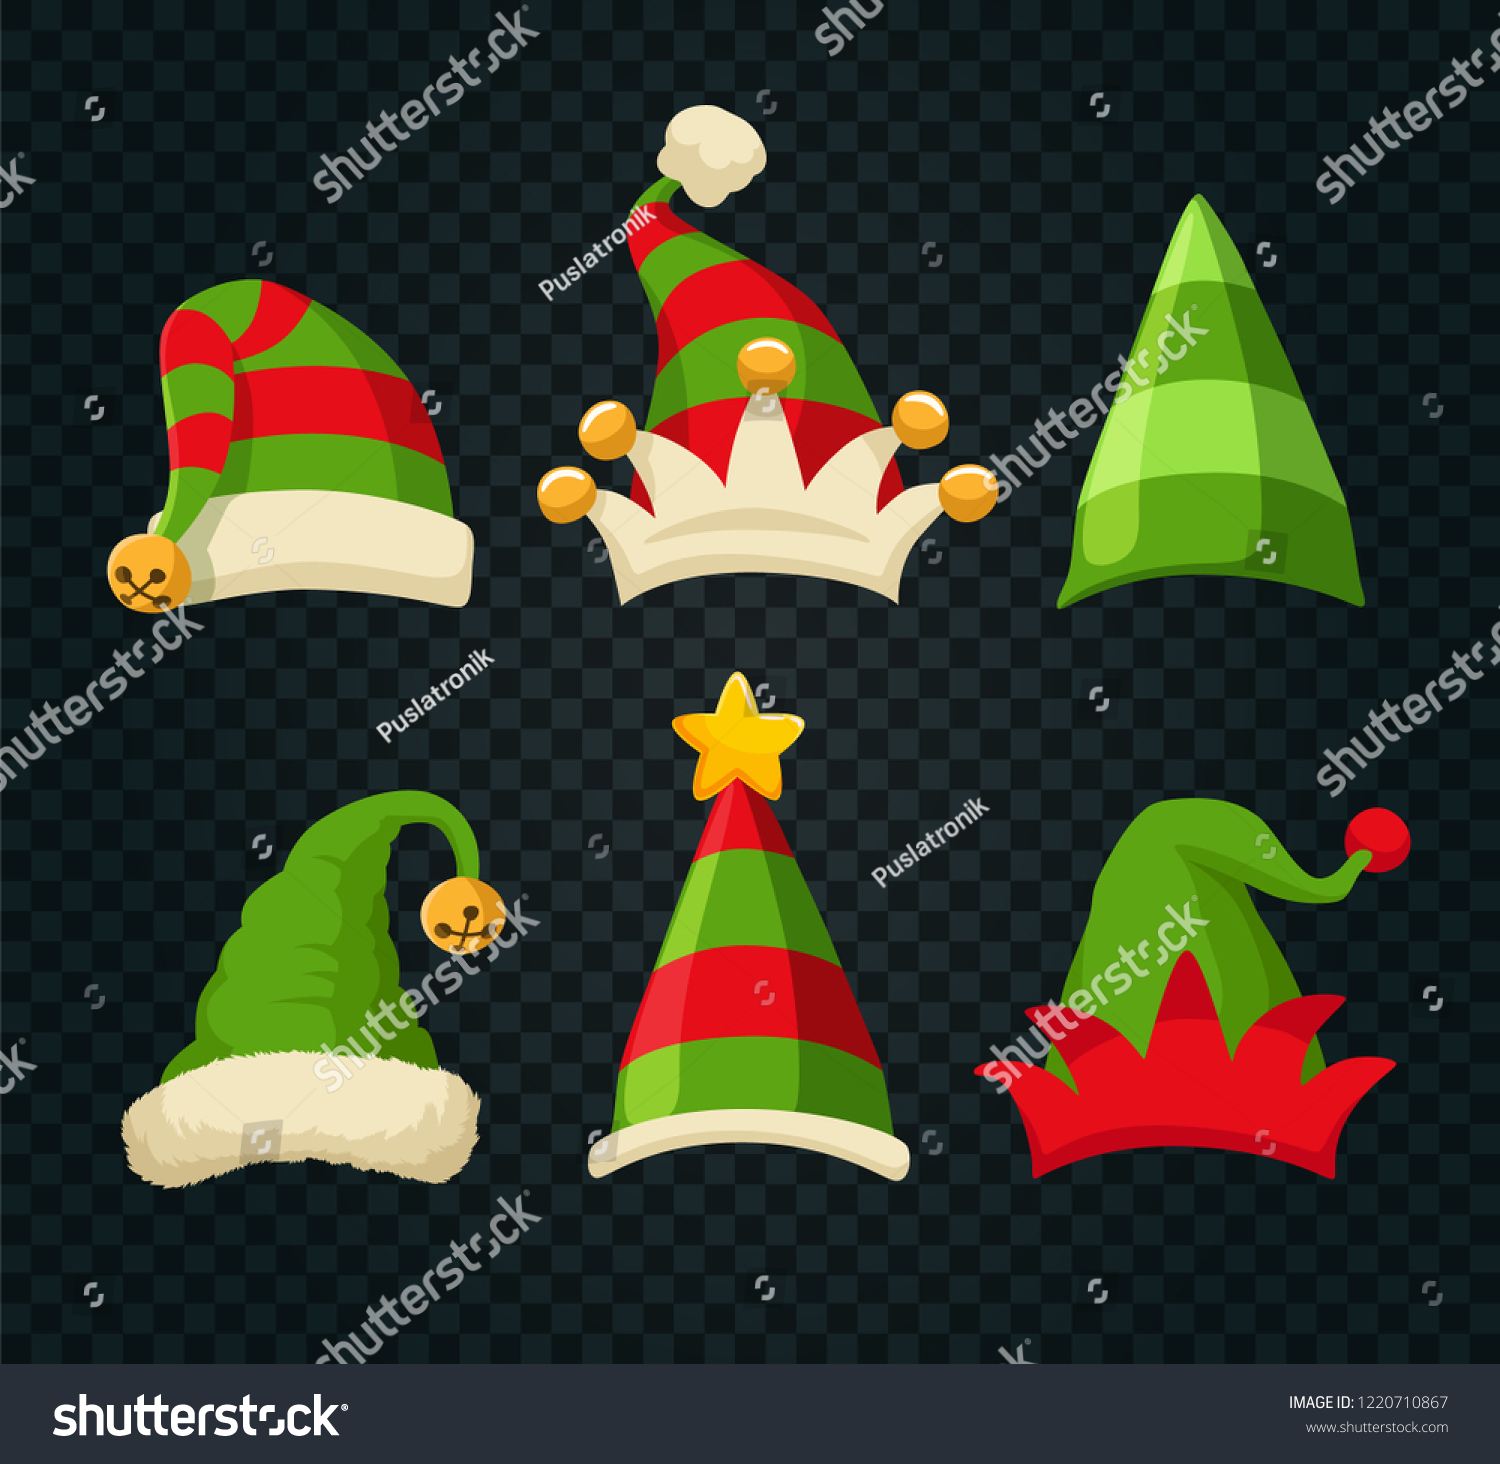 8754b45fe86 Winter Woolen Elves Hat Christmas Set. Xmas Green and Red Fur Cap Photo  Booth Props for Kids on Transparent Background. Cartoon Style Vector  Illustration - ...